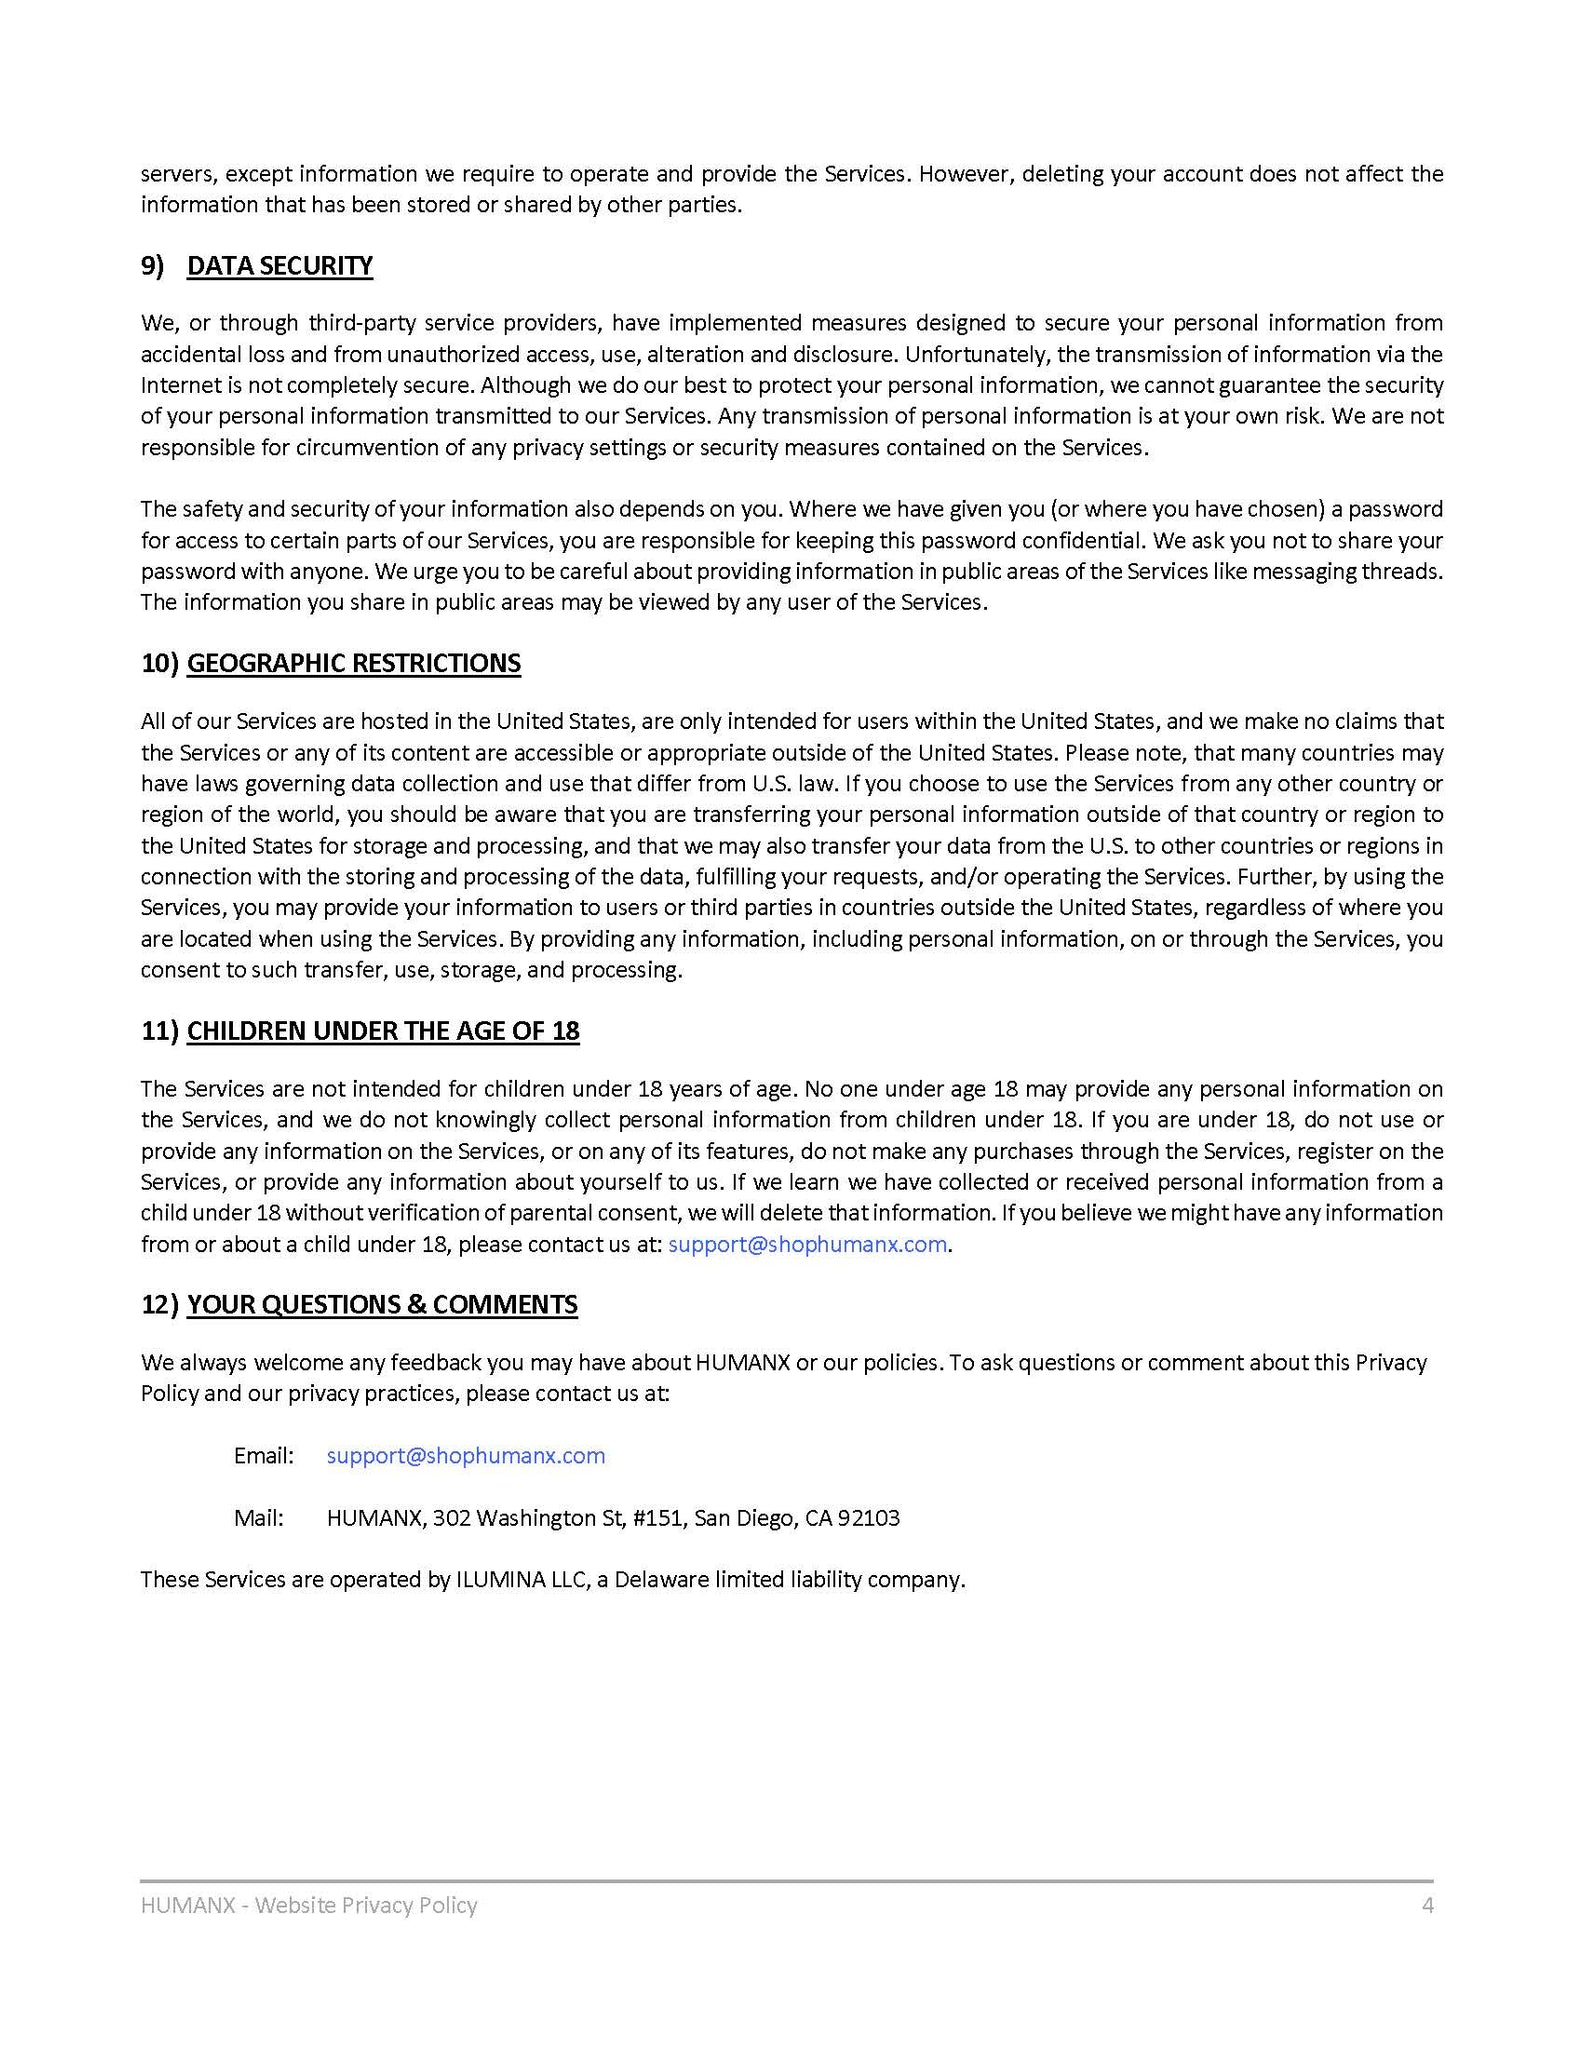 Privacy Policy - Page 4